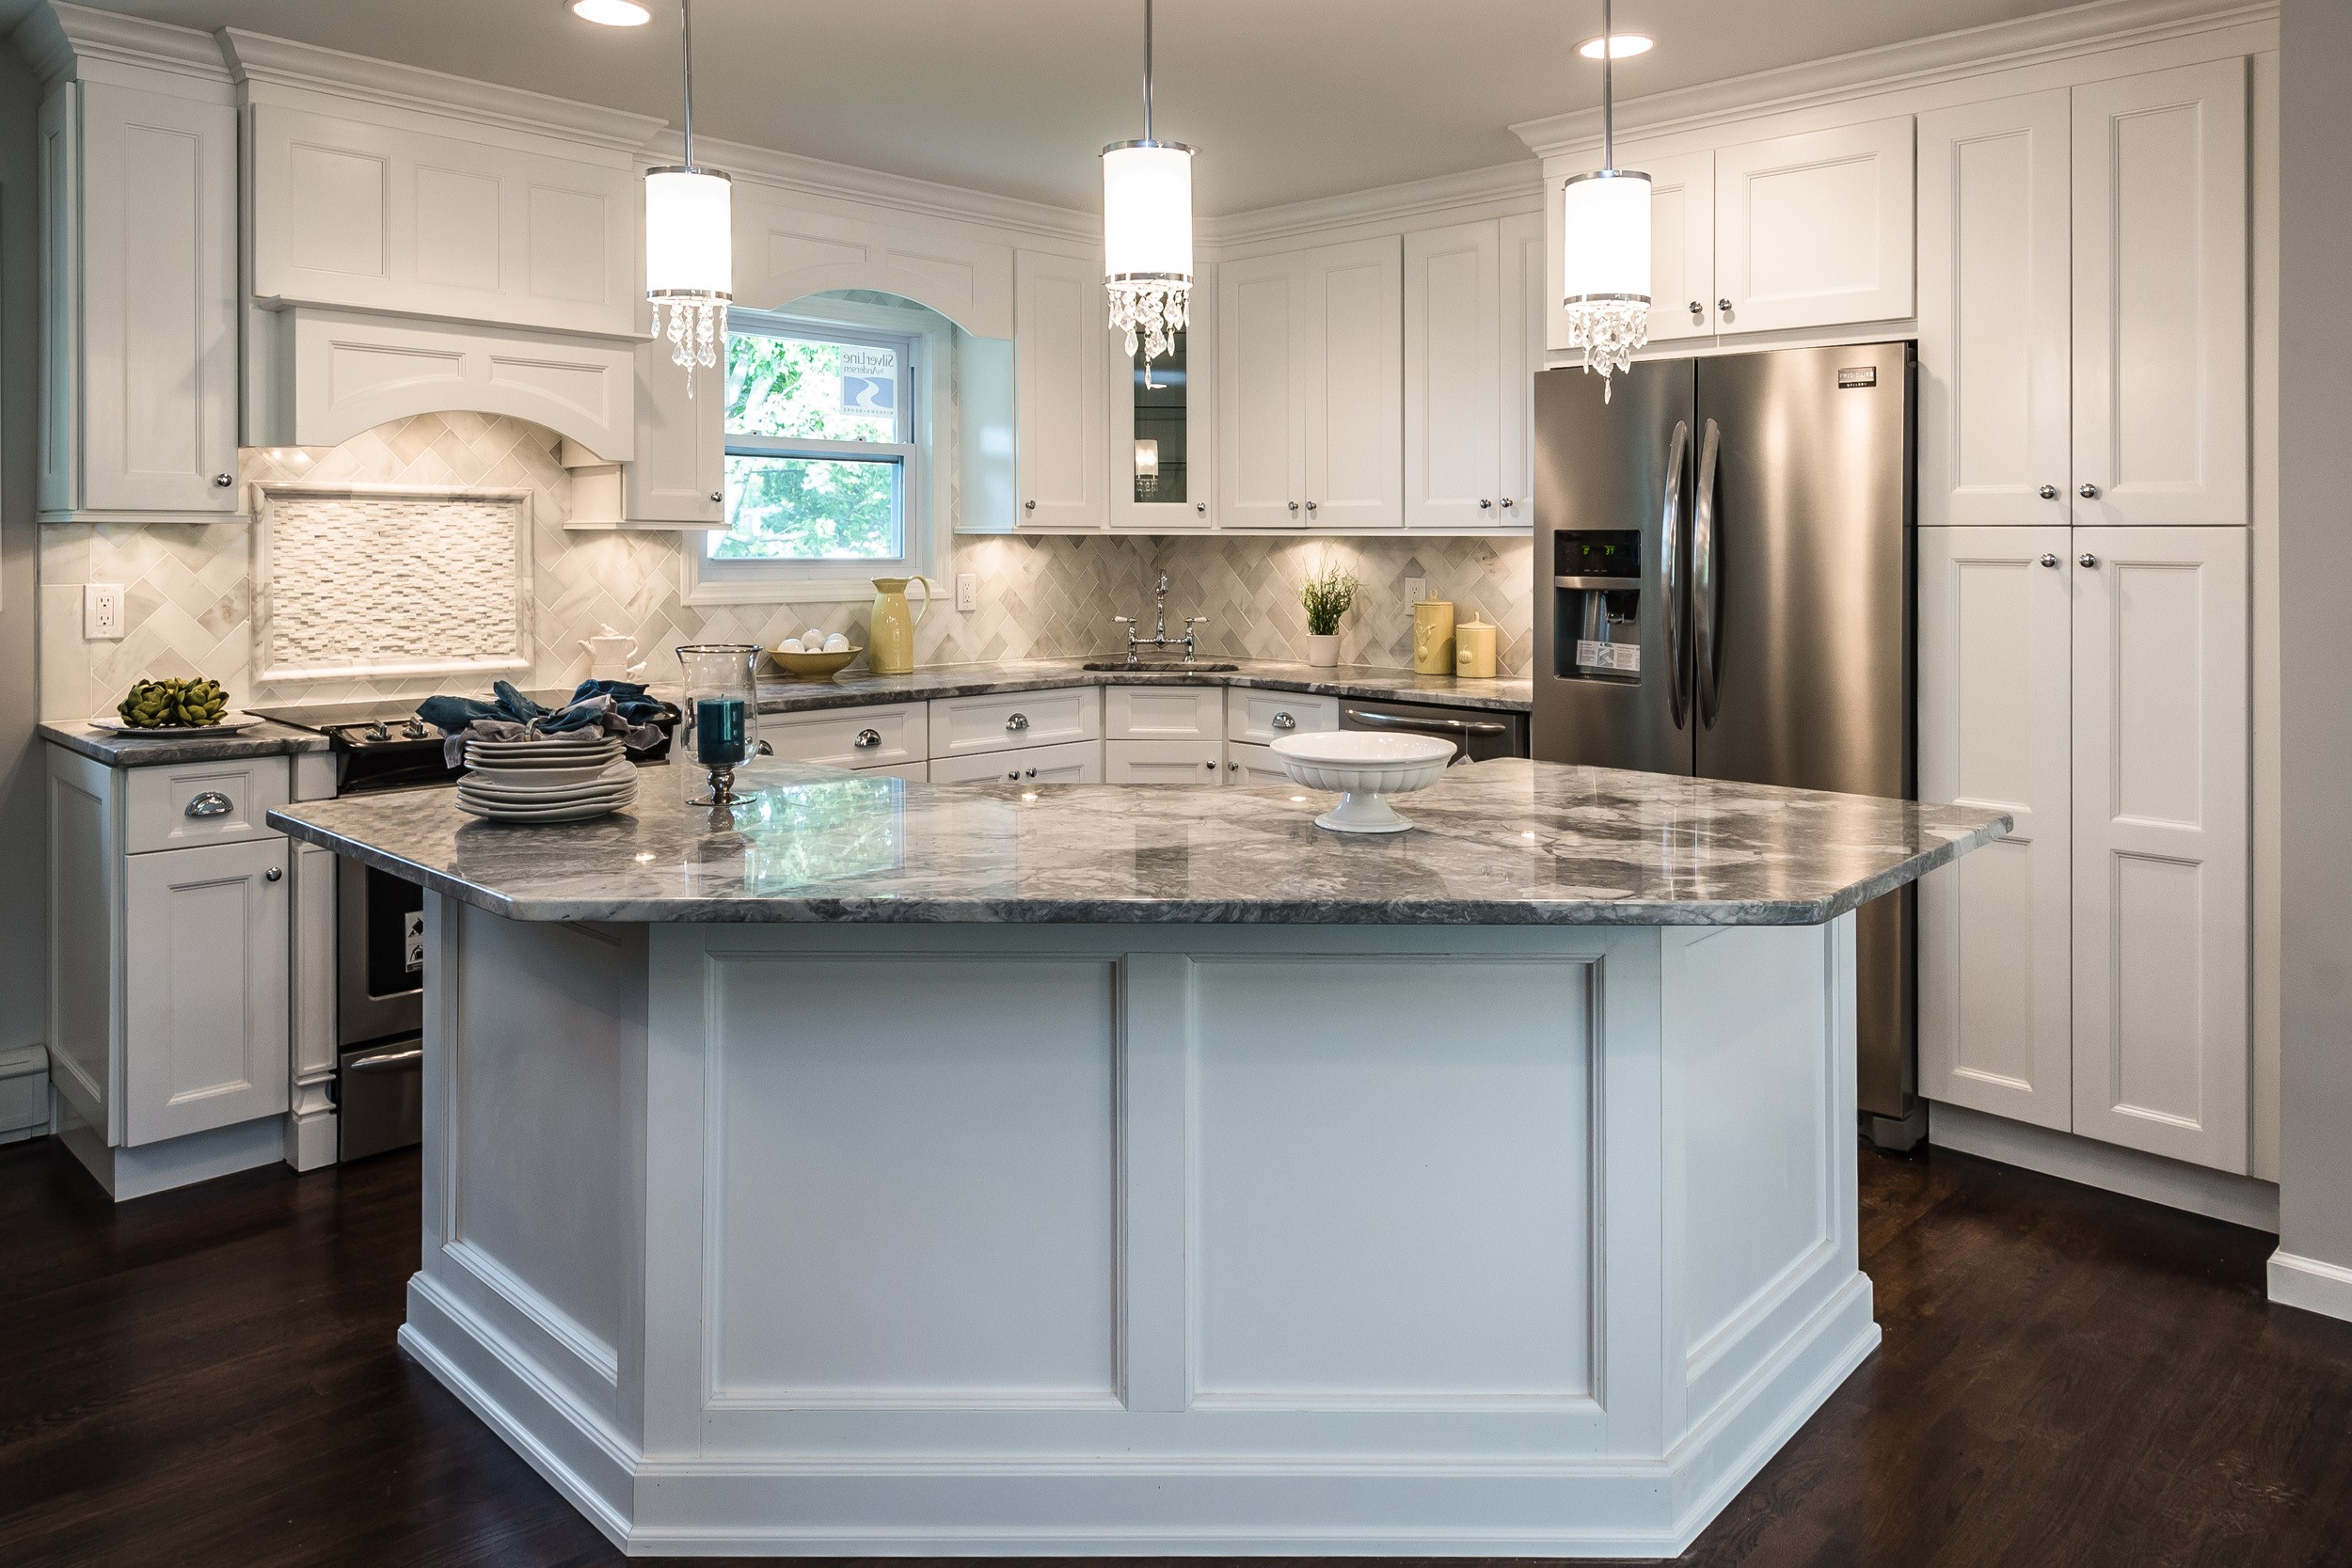 Kitchen Countertop Cabinets How To Pair Kitchen Countertops And Cabinets